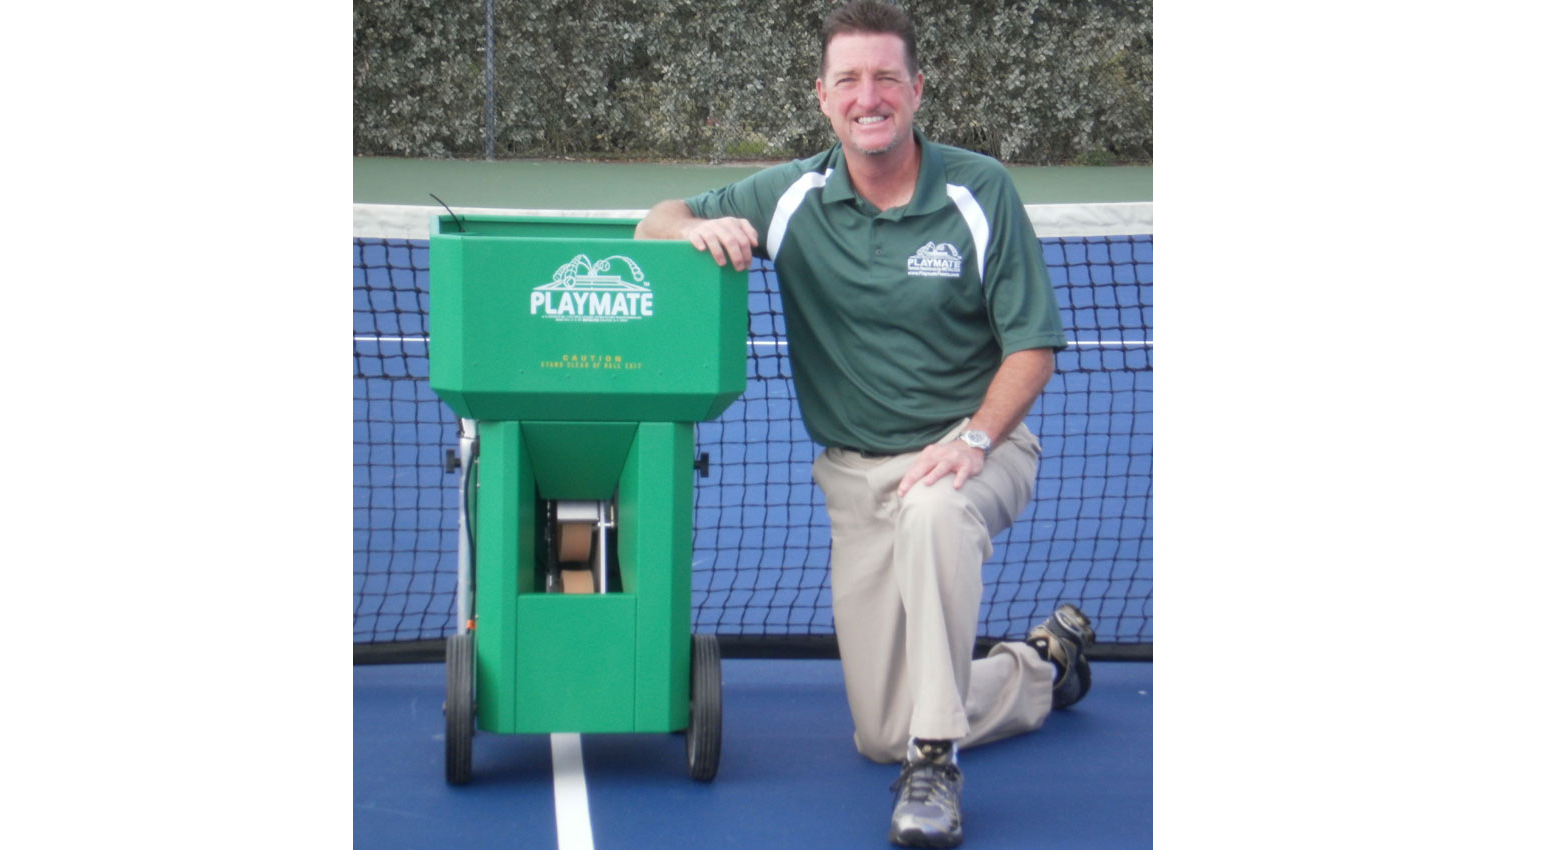 Playmate Tennis Dealers: STAN OLEY'S TENNIS EQUIPMENT SALES AND SERVICE INC.